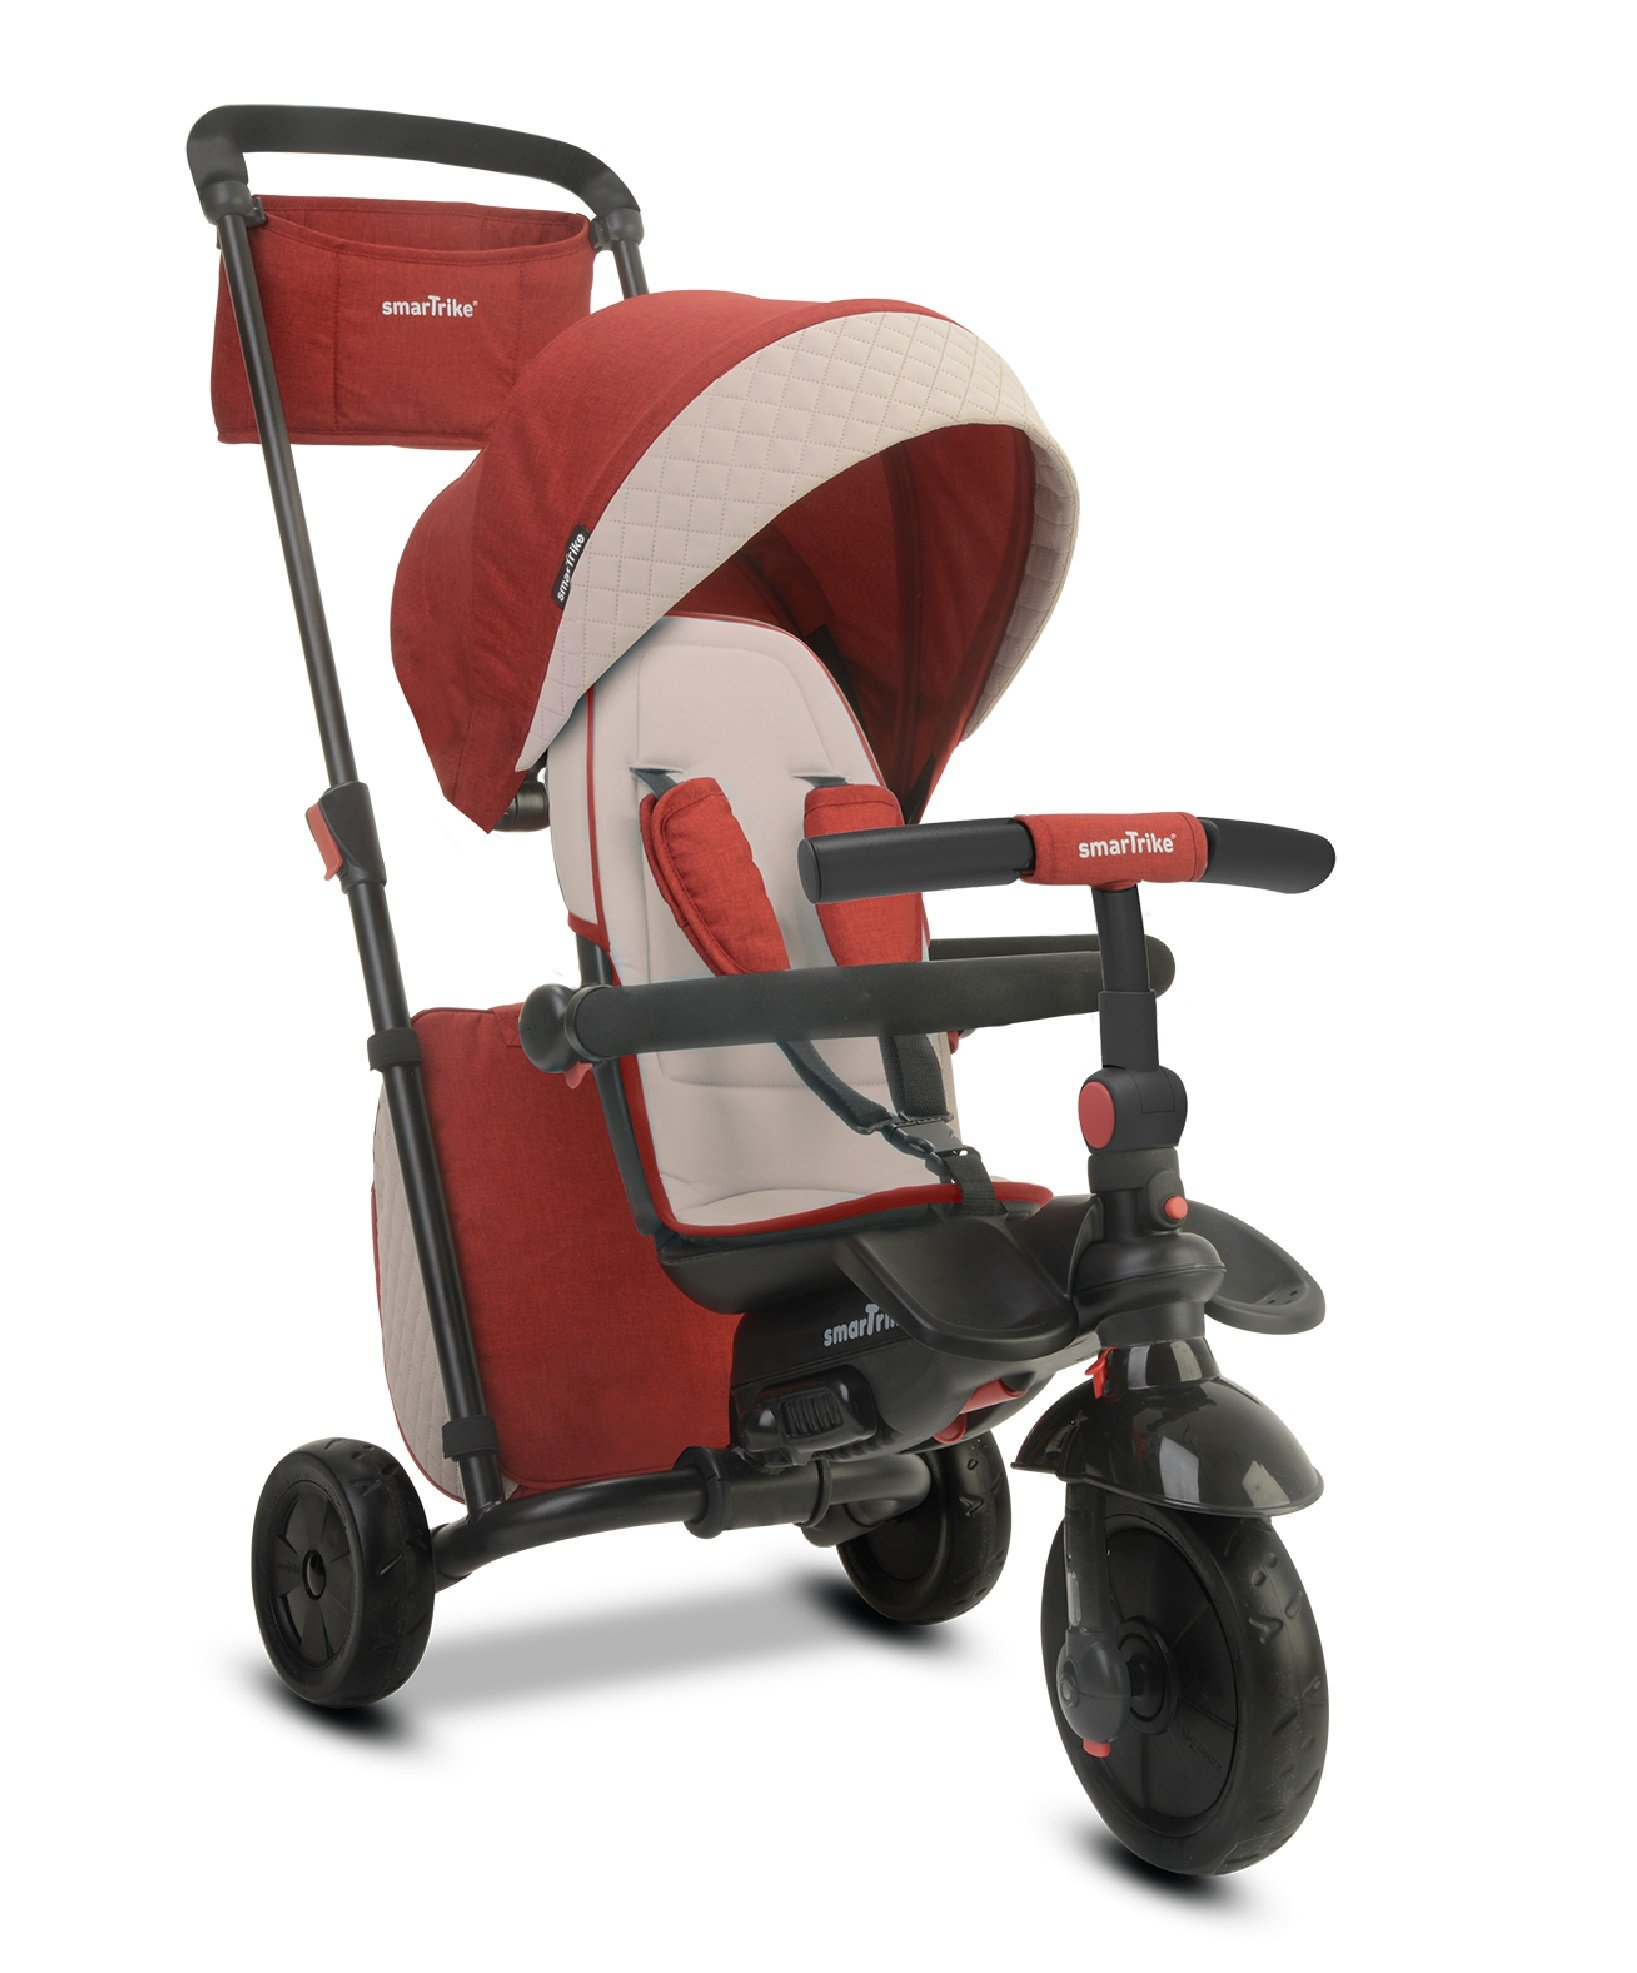 smarTrike Smartfold 600 Baby Tricycle, Red by smarTrike